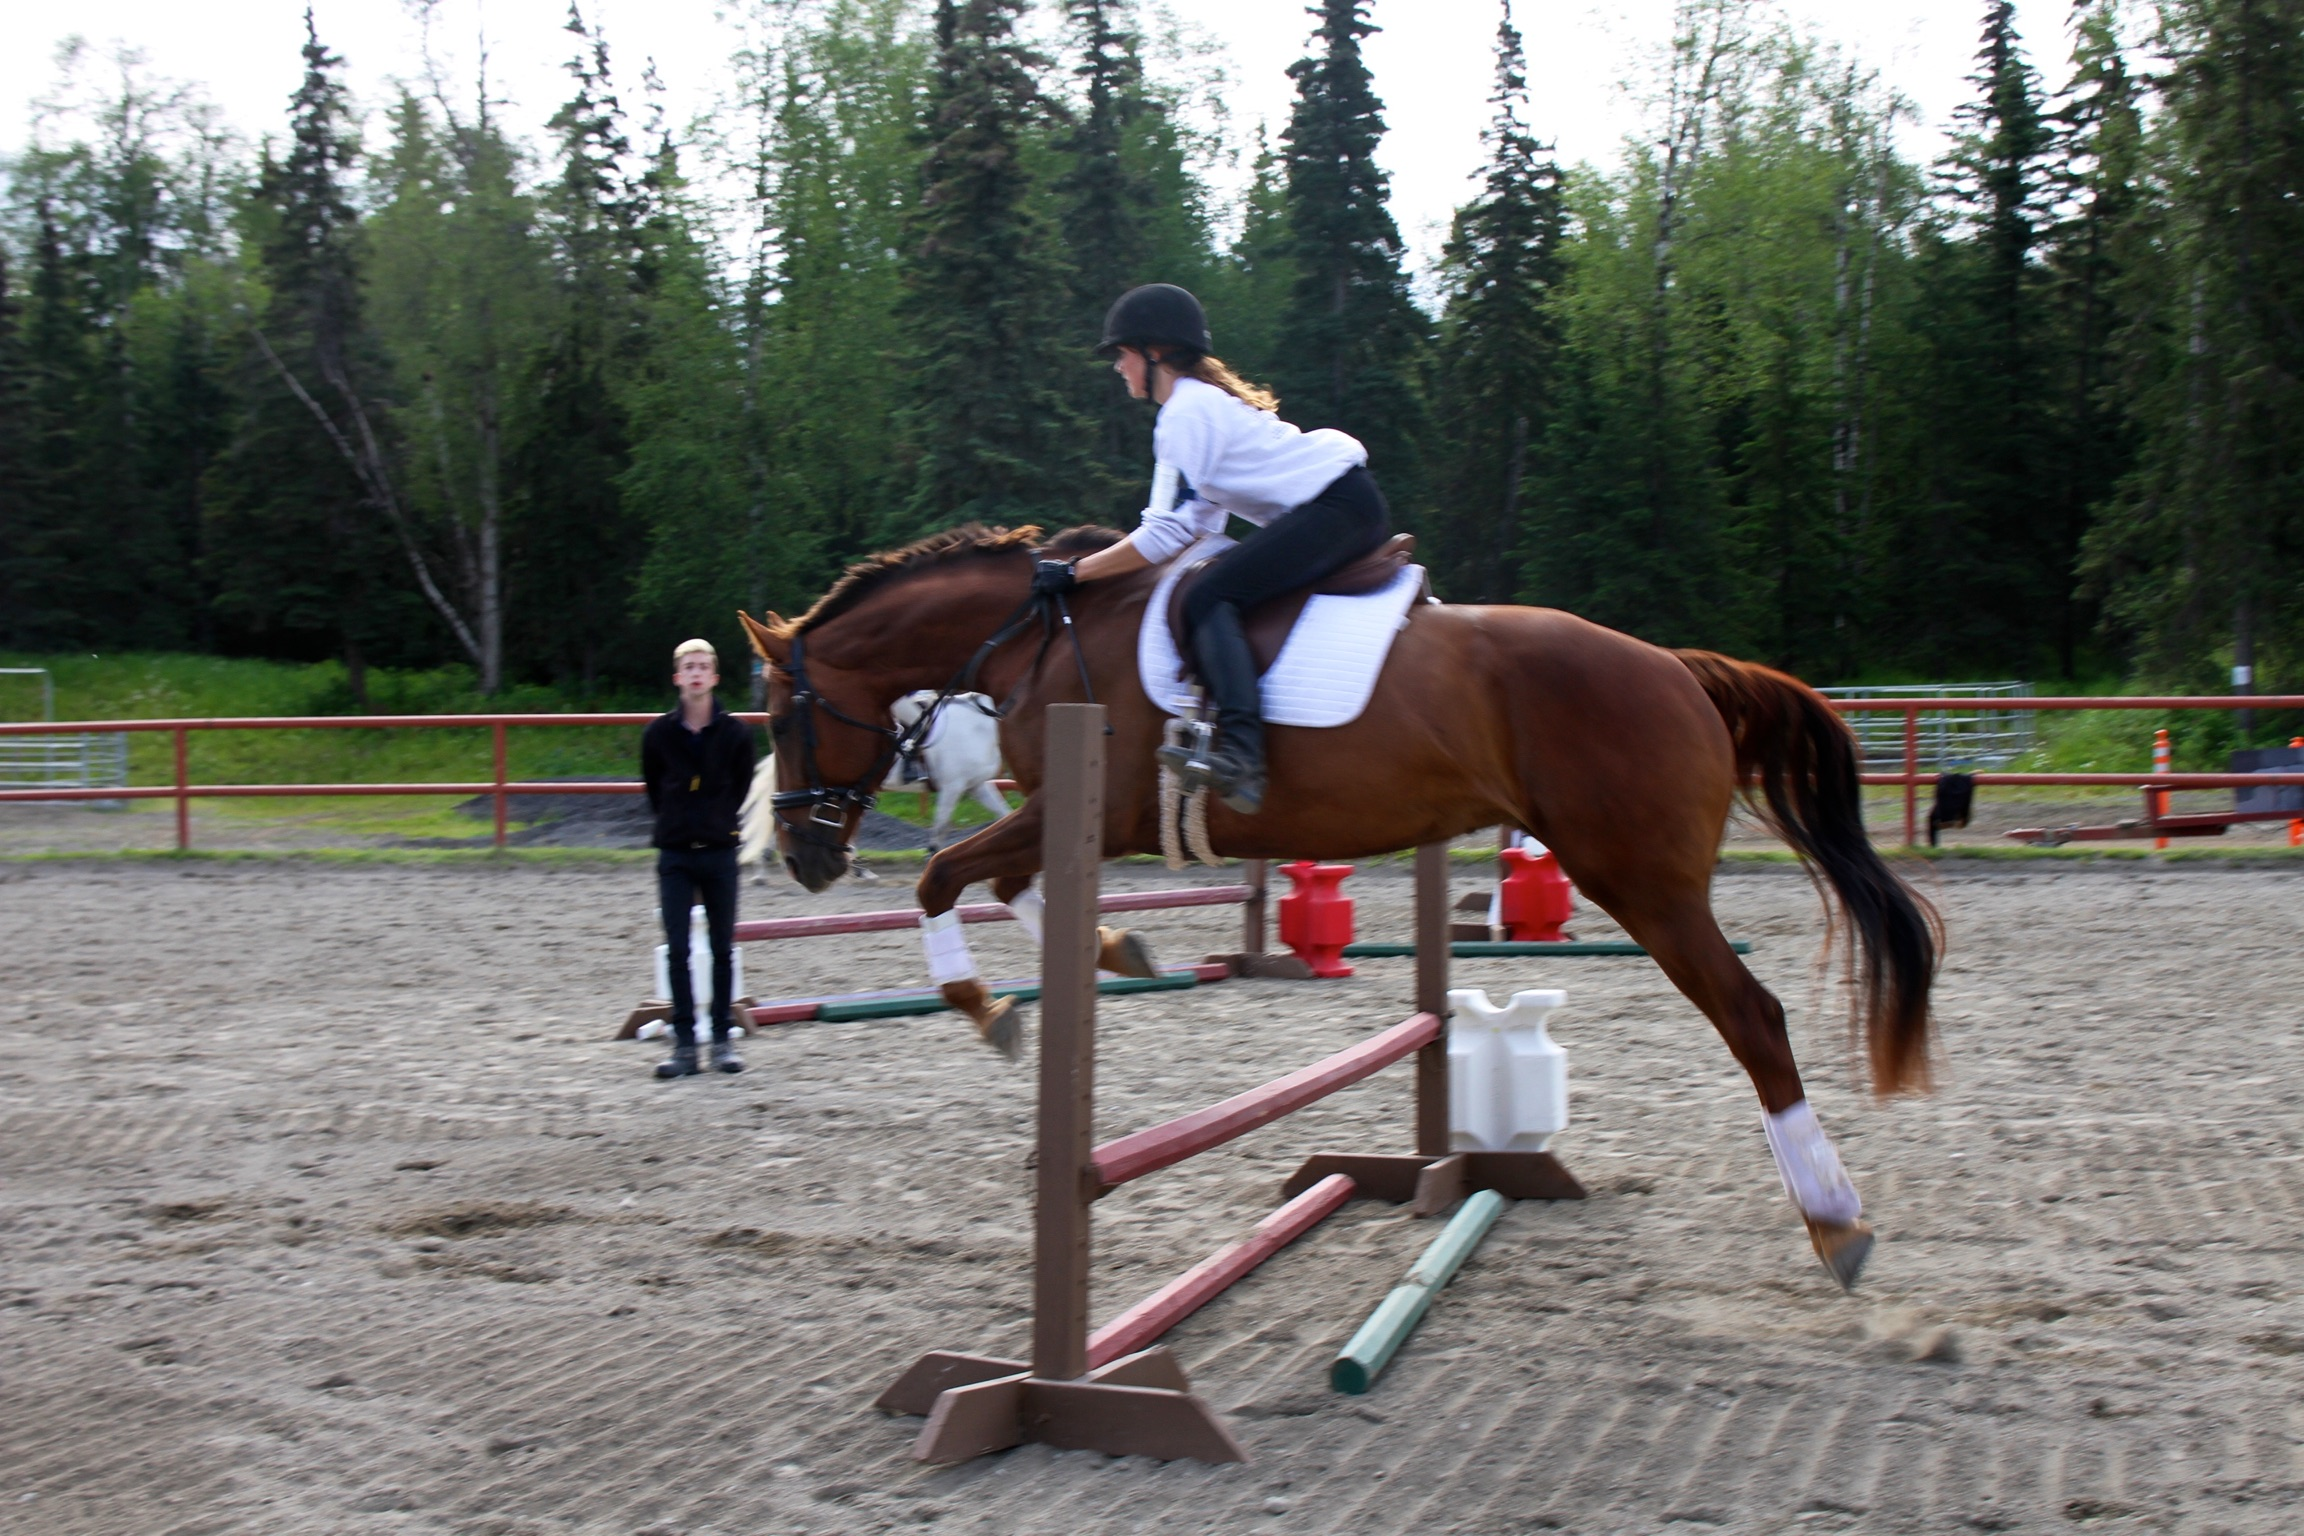 Incredible Dressage/Jumping Warmblood